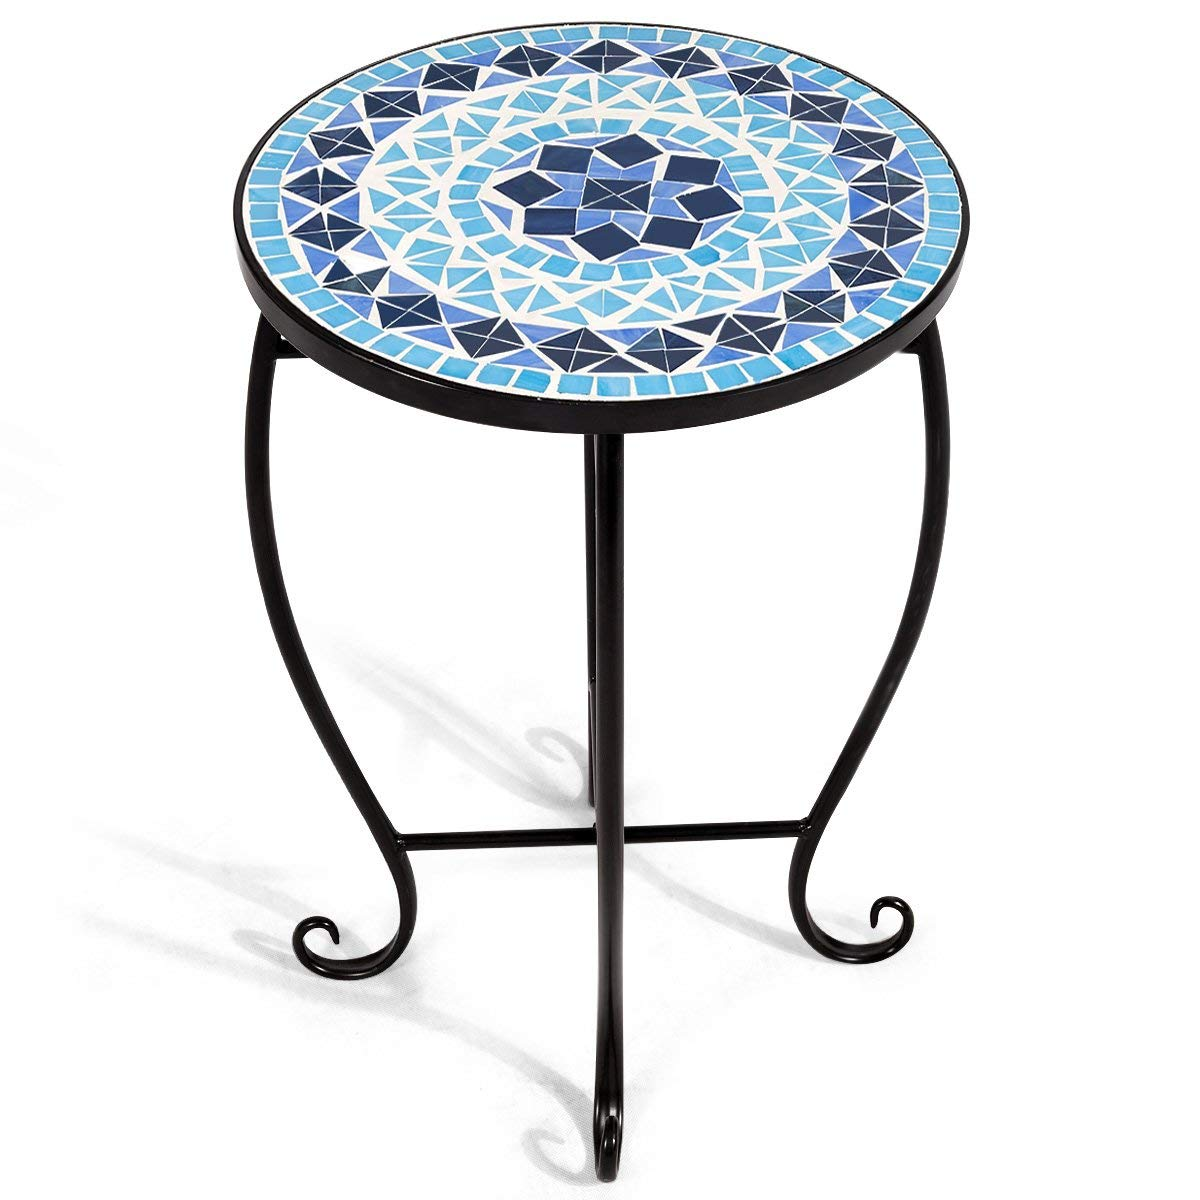 round glass accent table find threshold mosaic get quotations giantex side patio plant stand porch beach theme balcony back deck pool aluminum outdoor dining ikea end tables